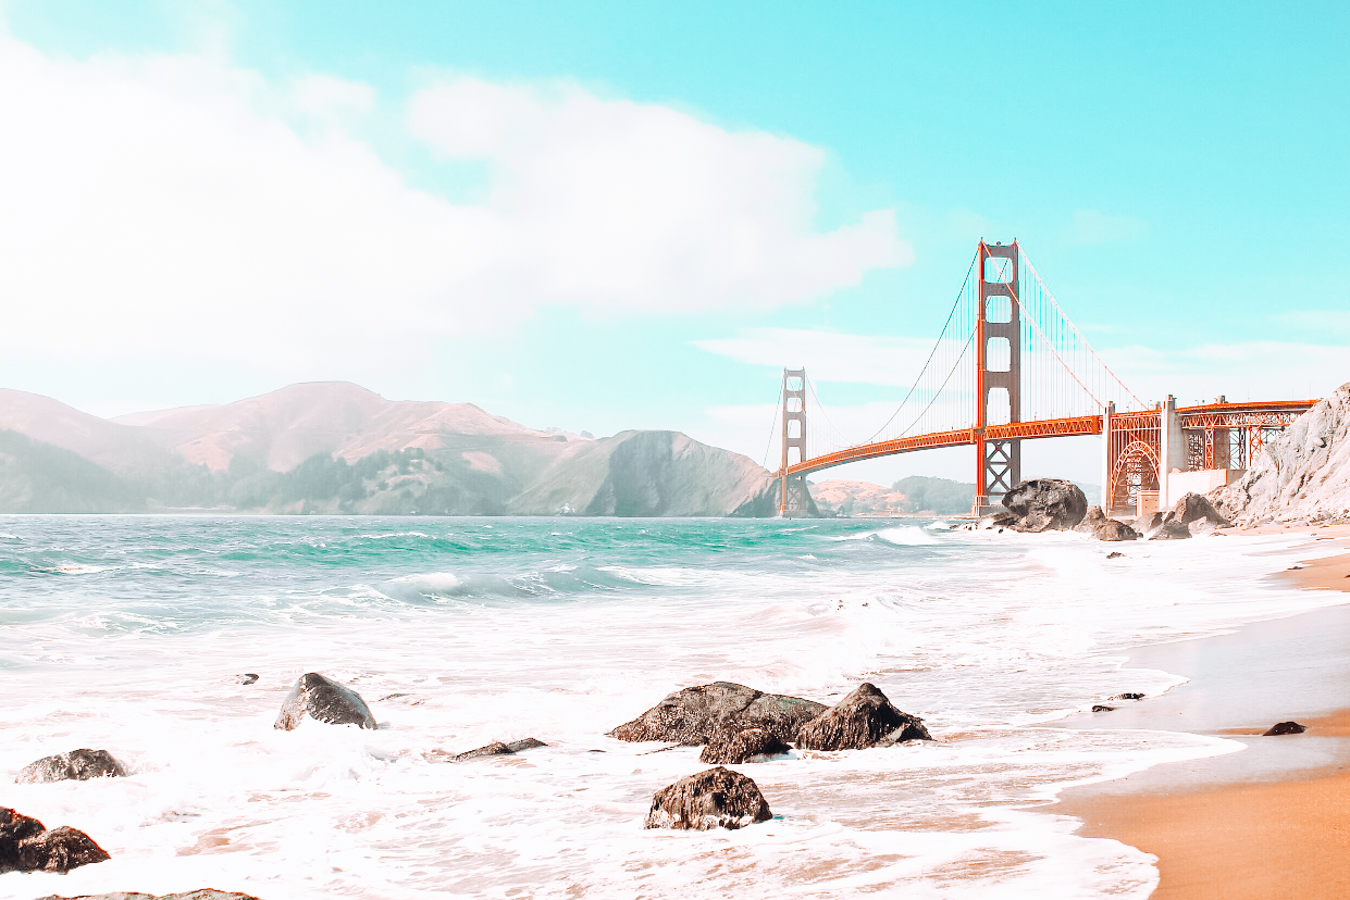 Beach with a view of the Golden Gate Bridge